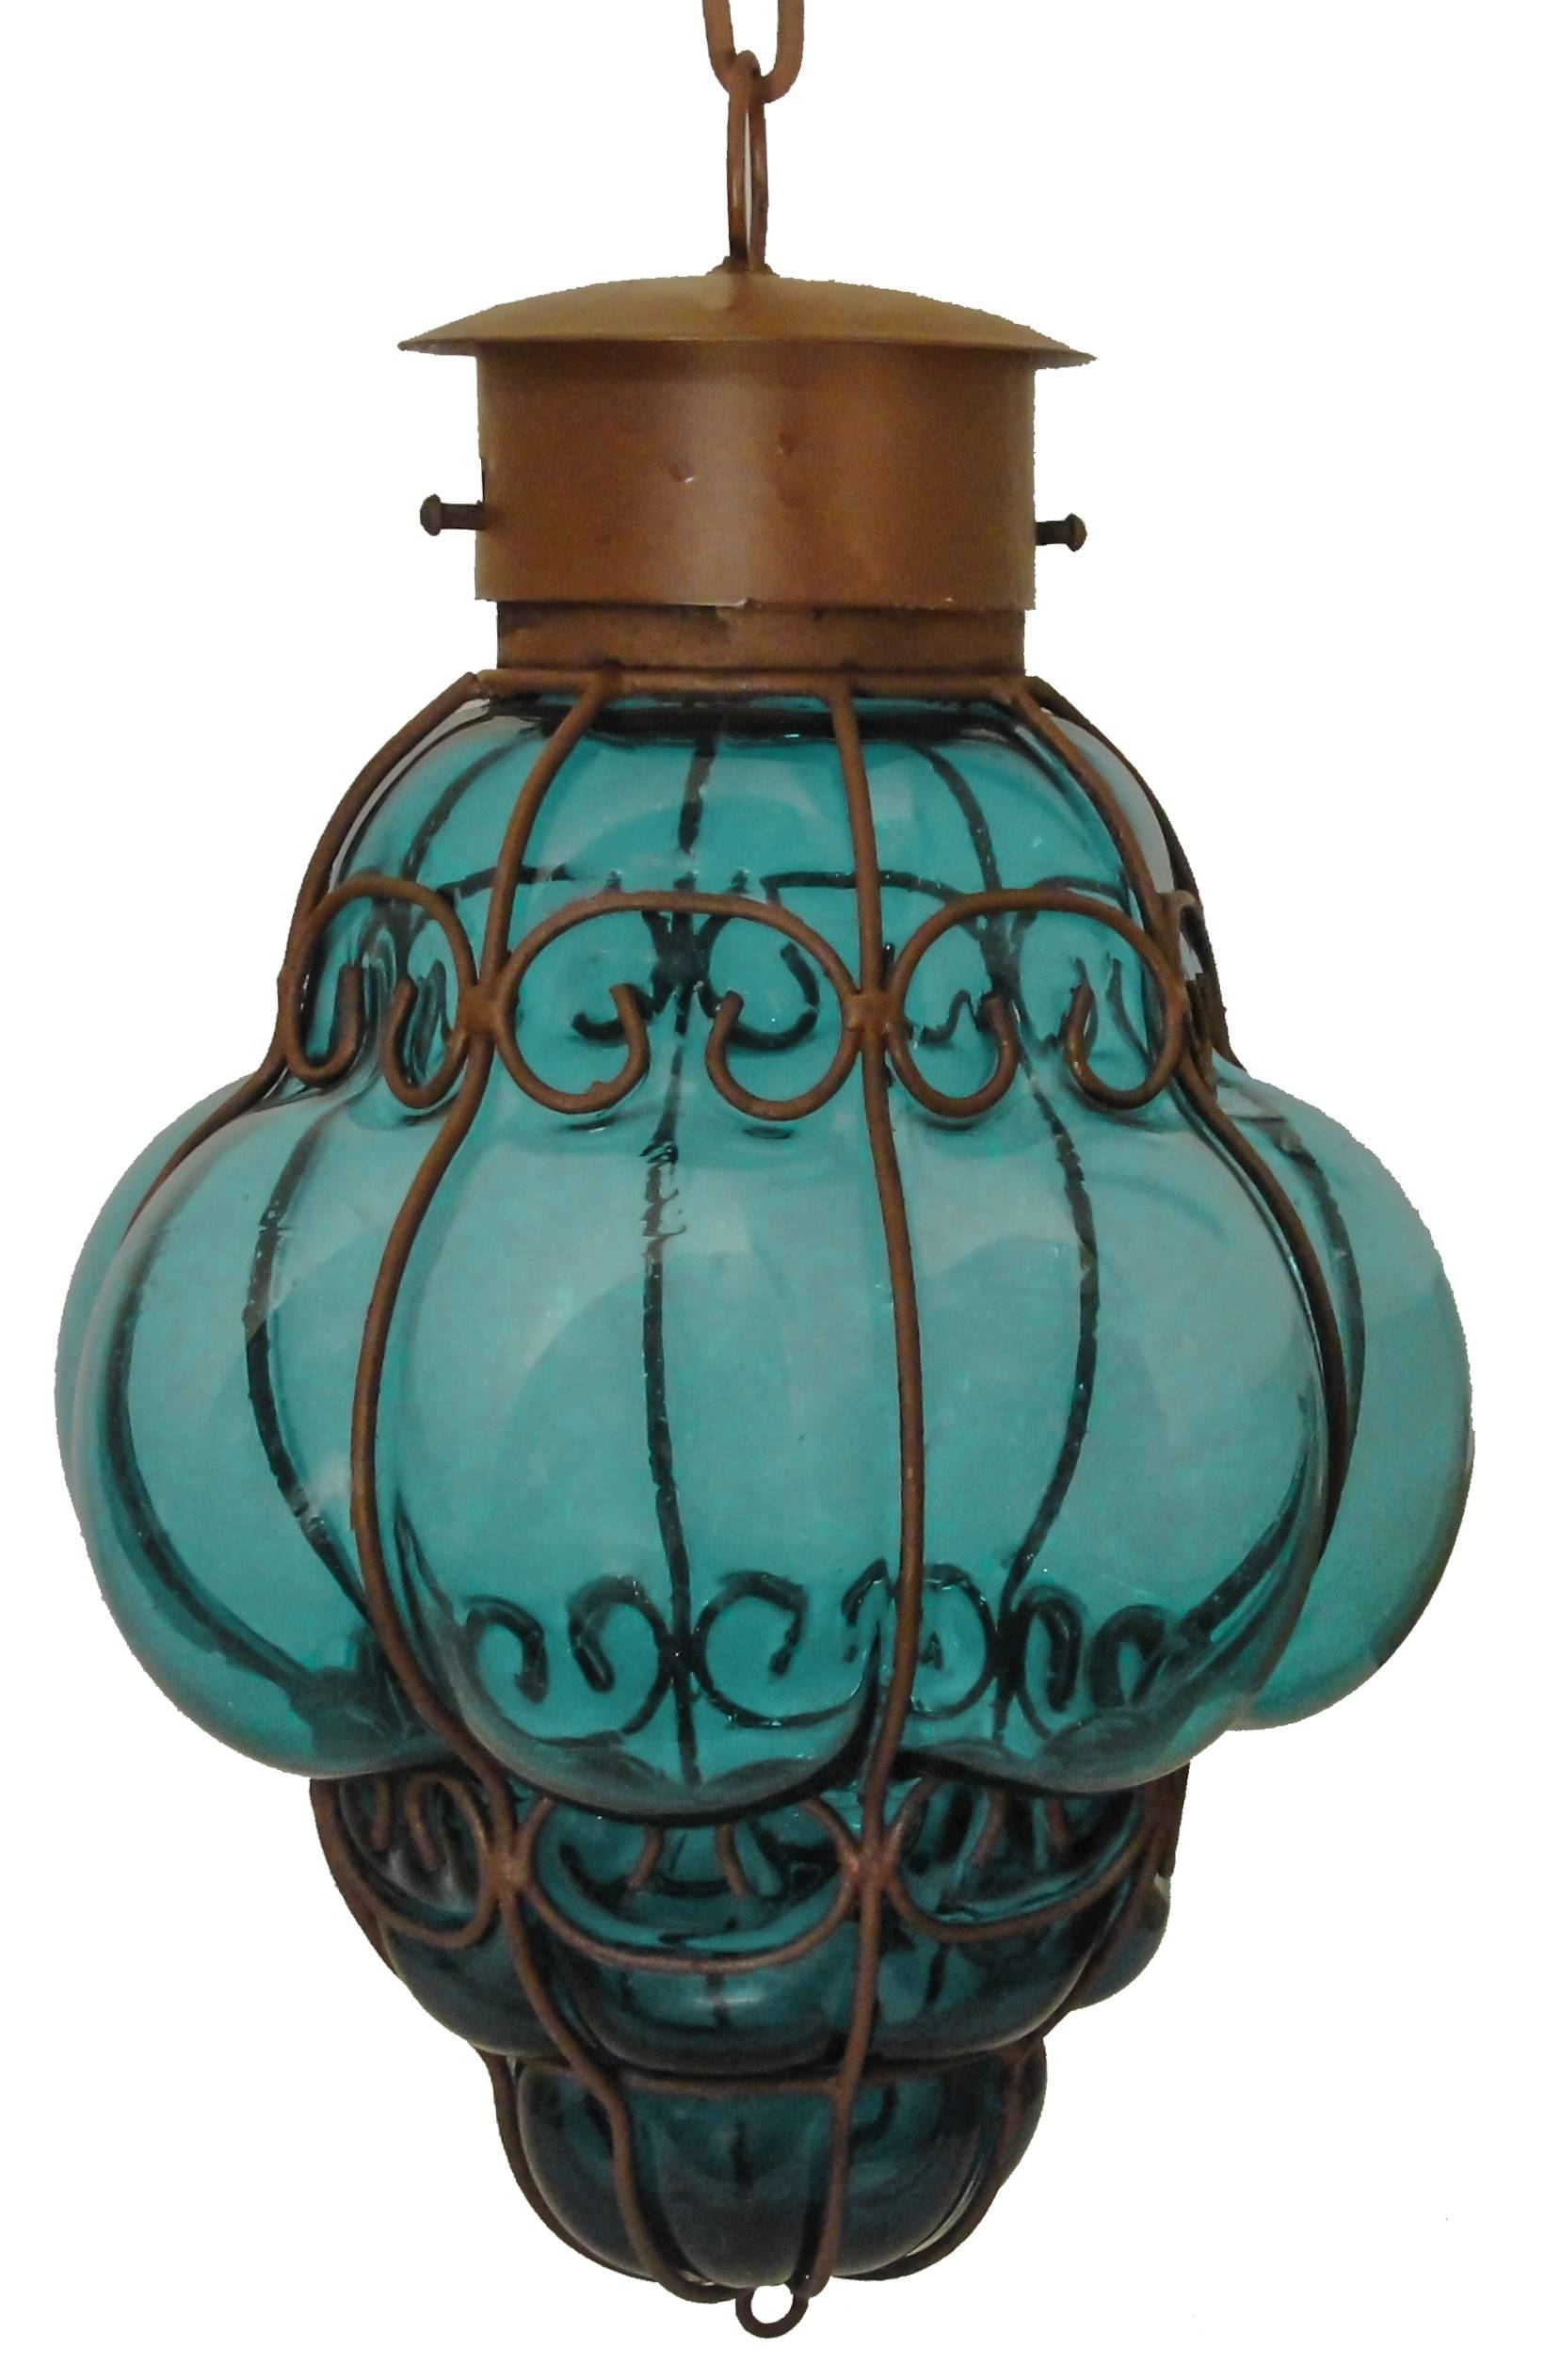 Mexican Lamps - 10 Ways To Add Decoration To Your Lights | Warisan pertaining to Mexican Lights Fixtures (Image 14 of 15)